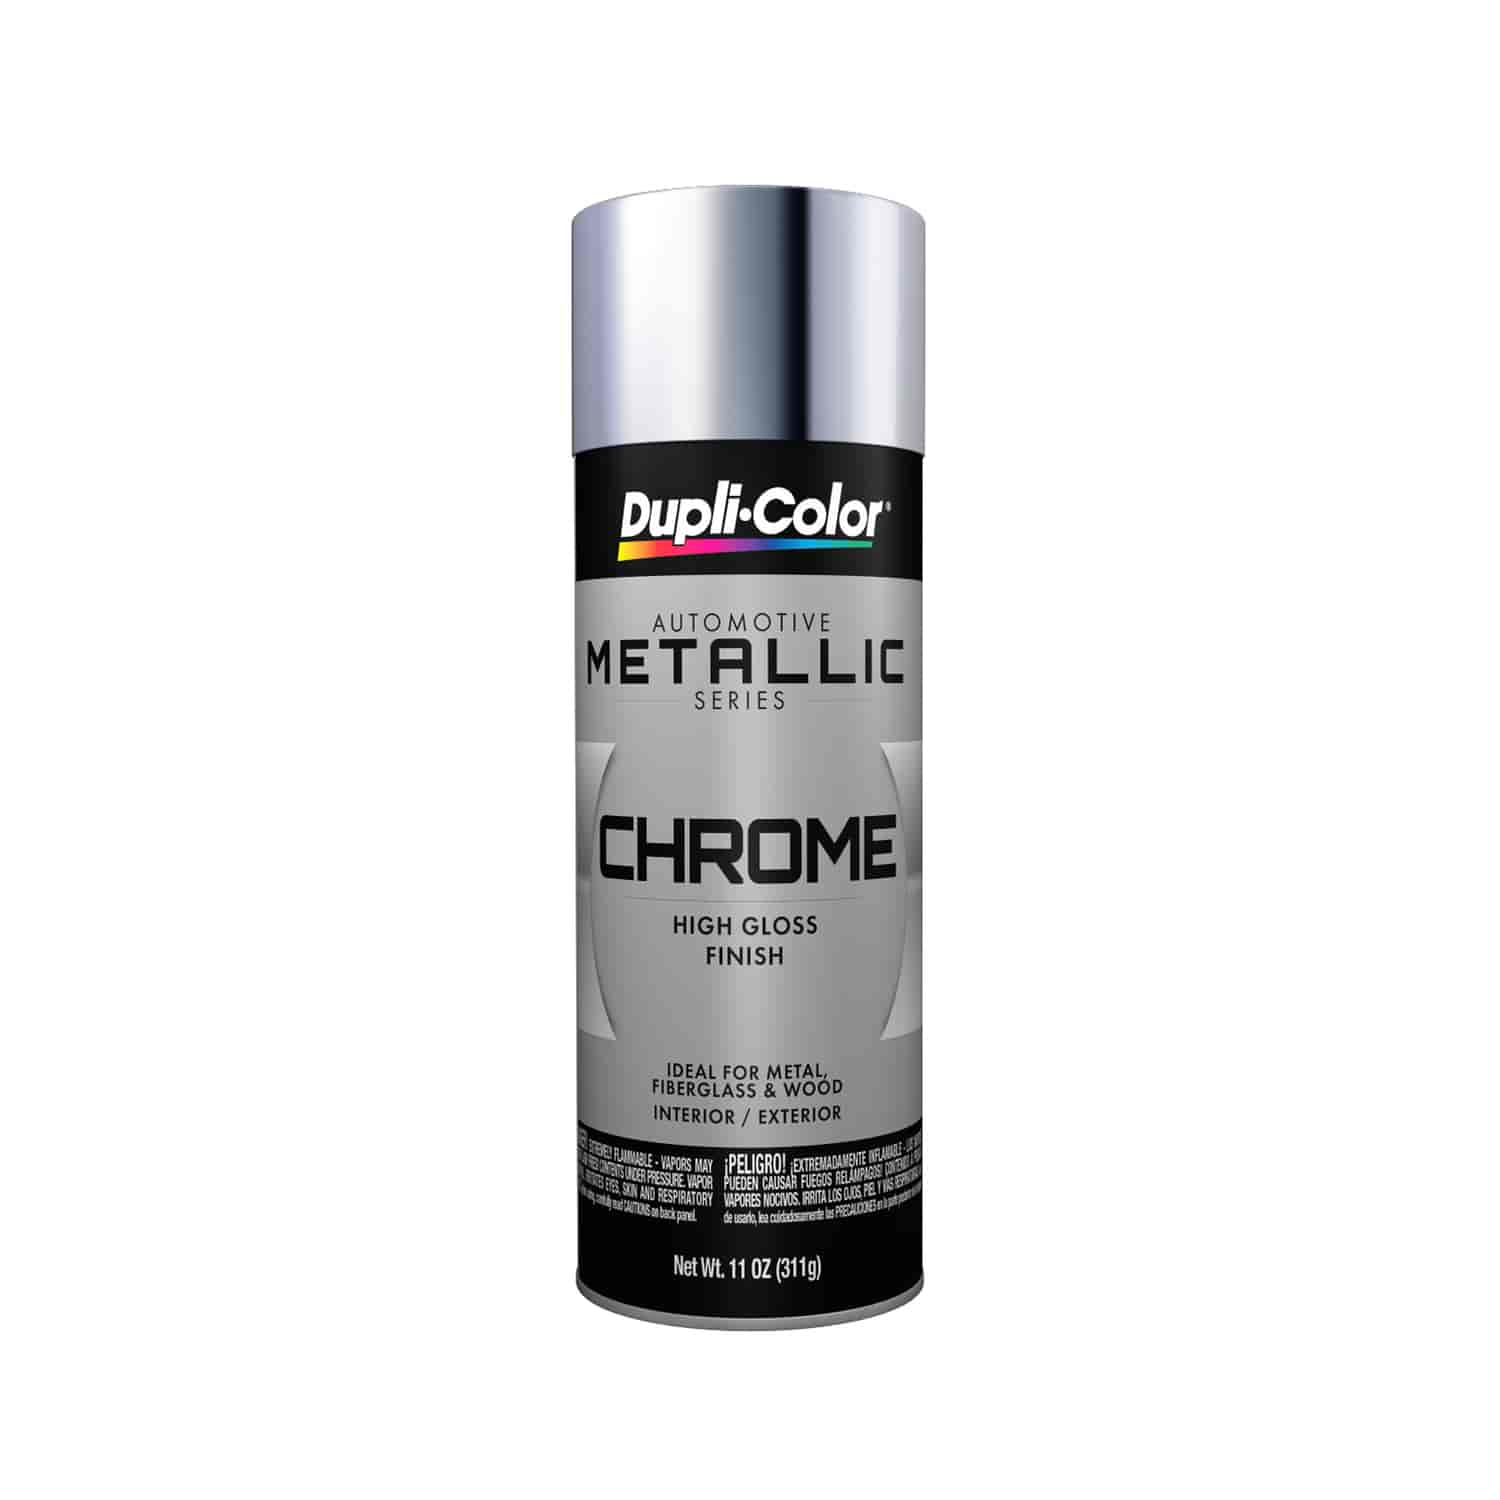 Duplicolor GS100 - Duplicolor Effex Paint & Automotive Metallic Paint